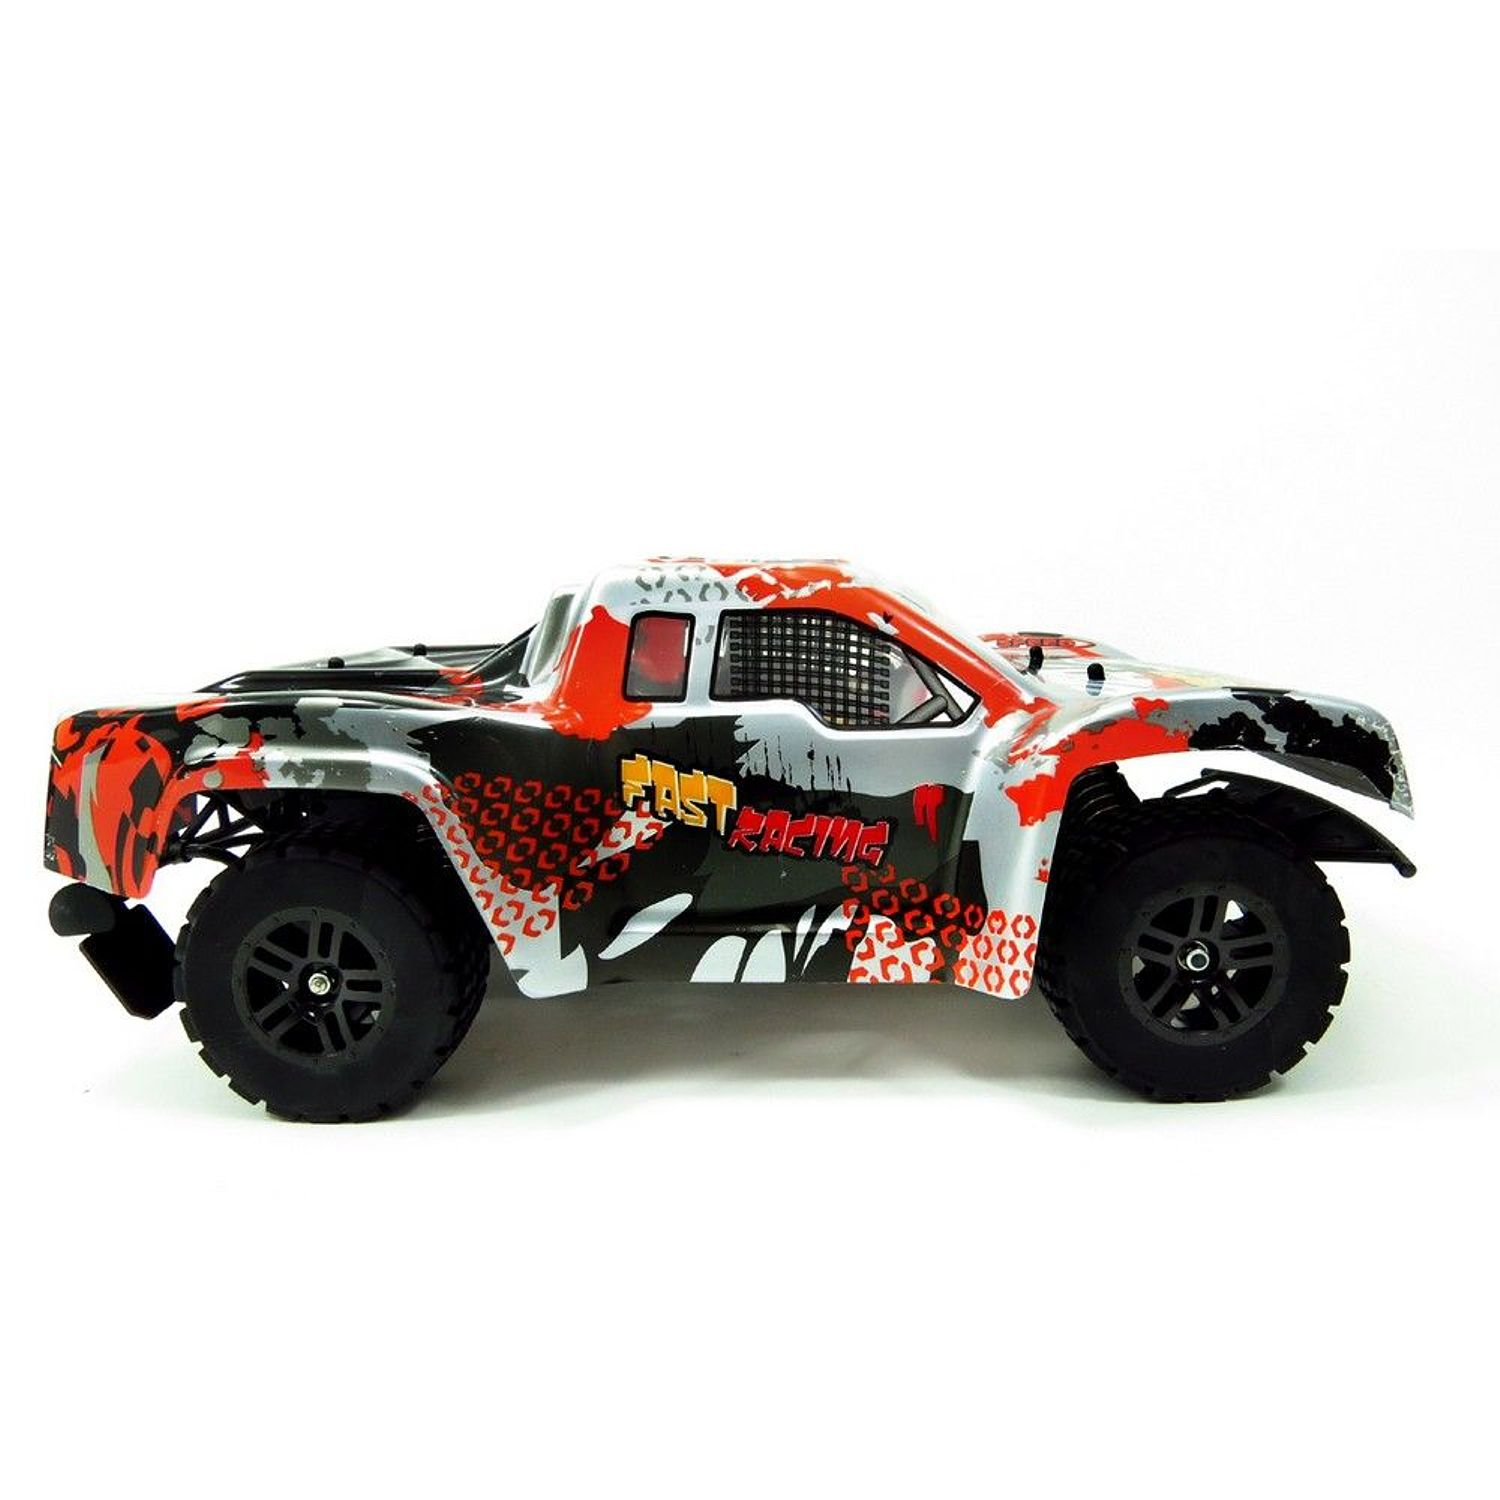 WL979 1:12 Scale 2.4G RTR RC Truck Buggy Racing Car High Speed Radio Control Silver (Gift... by